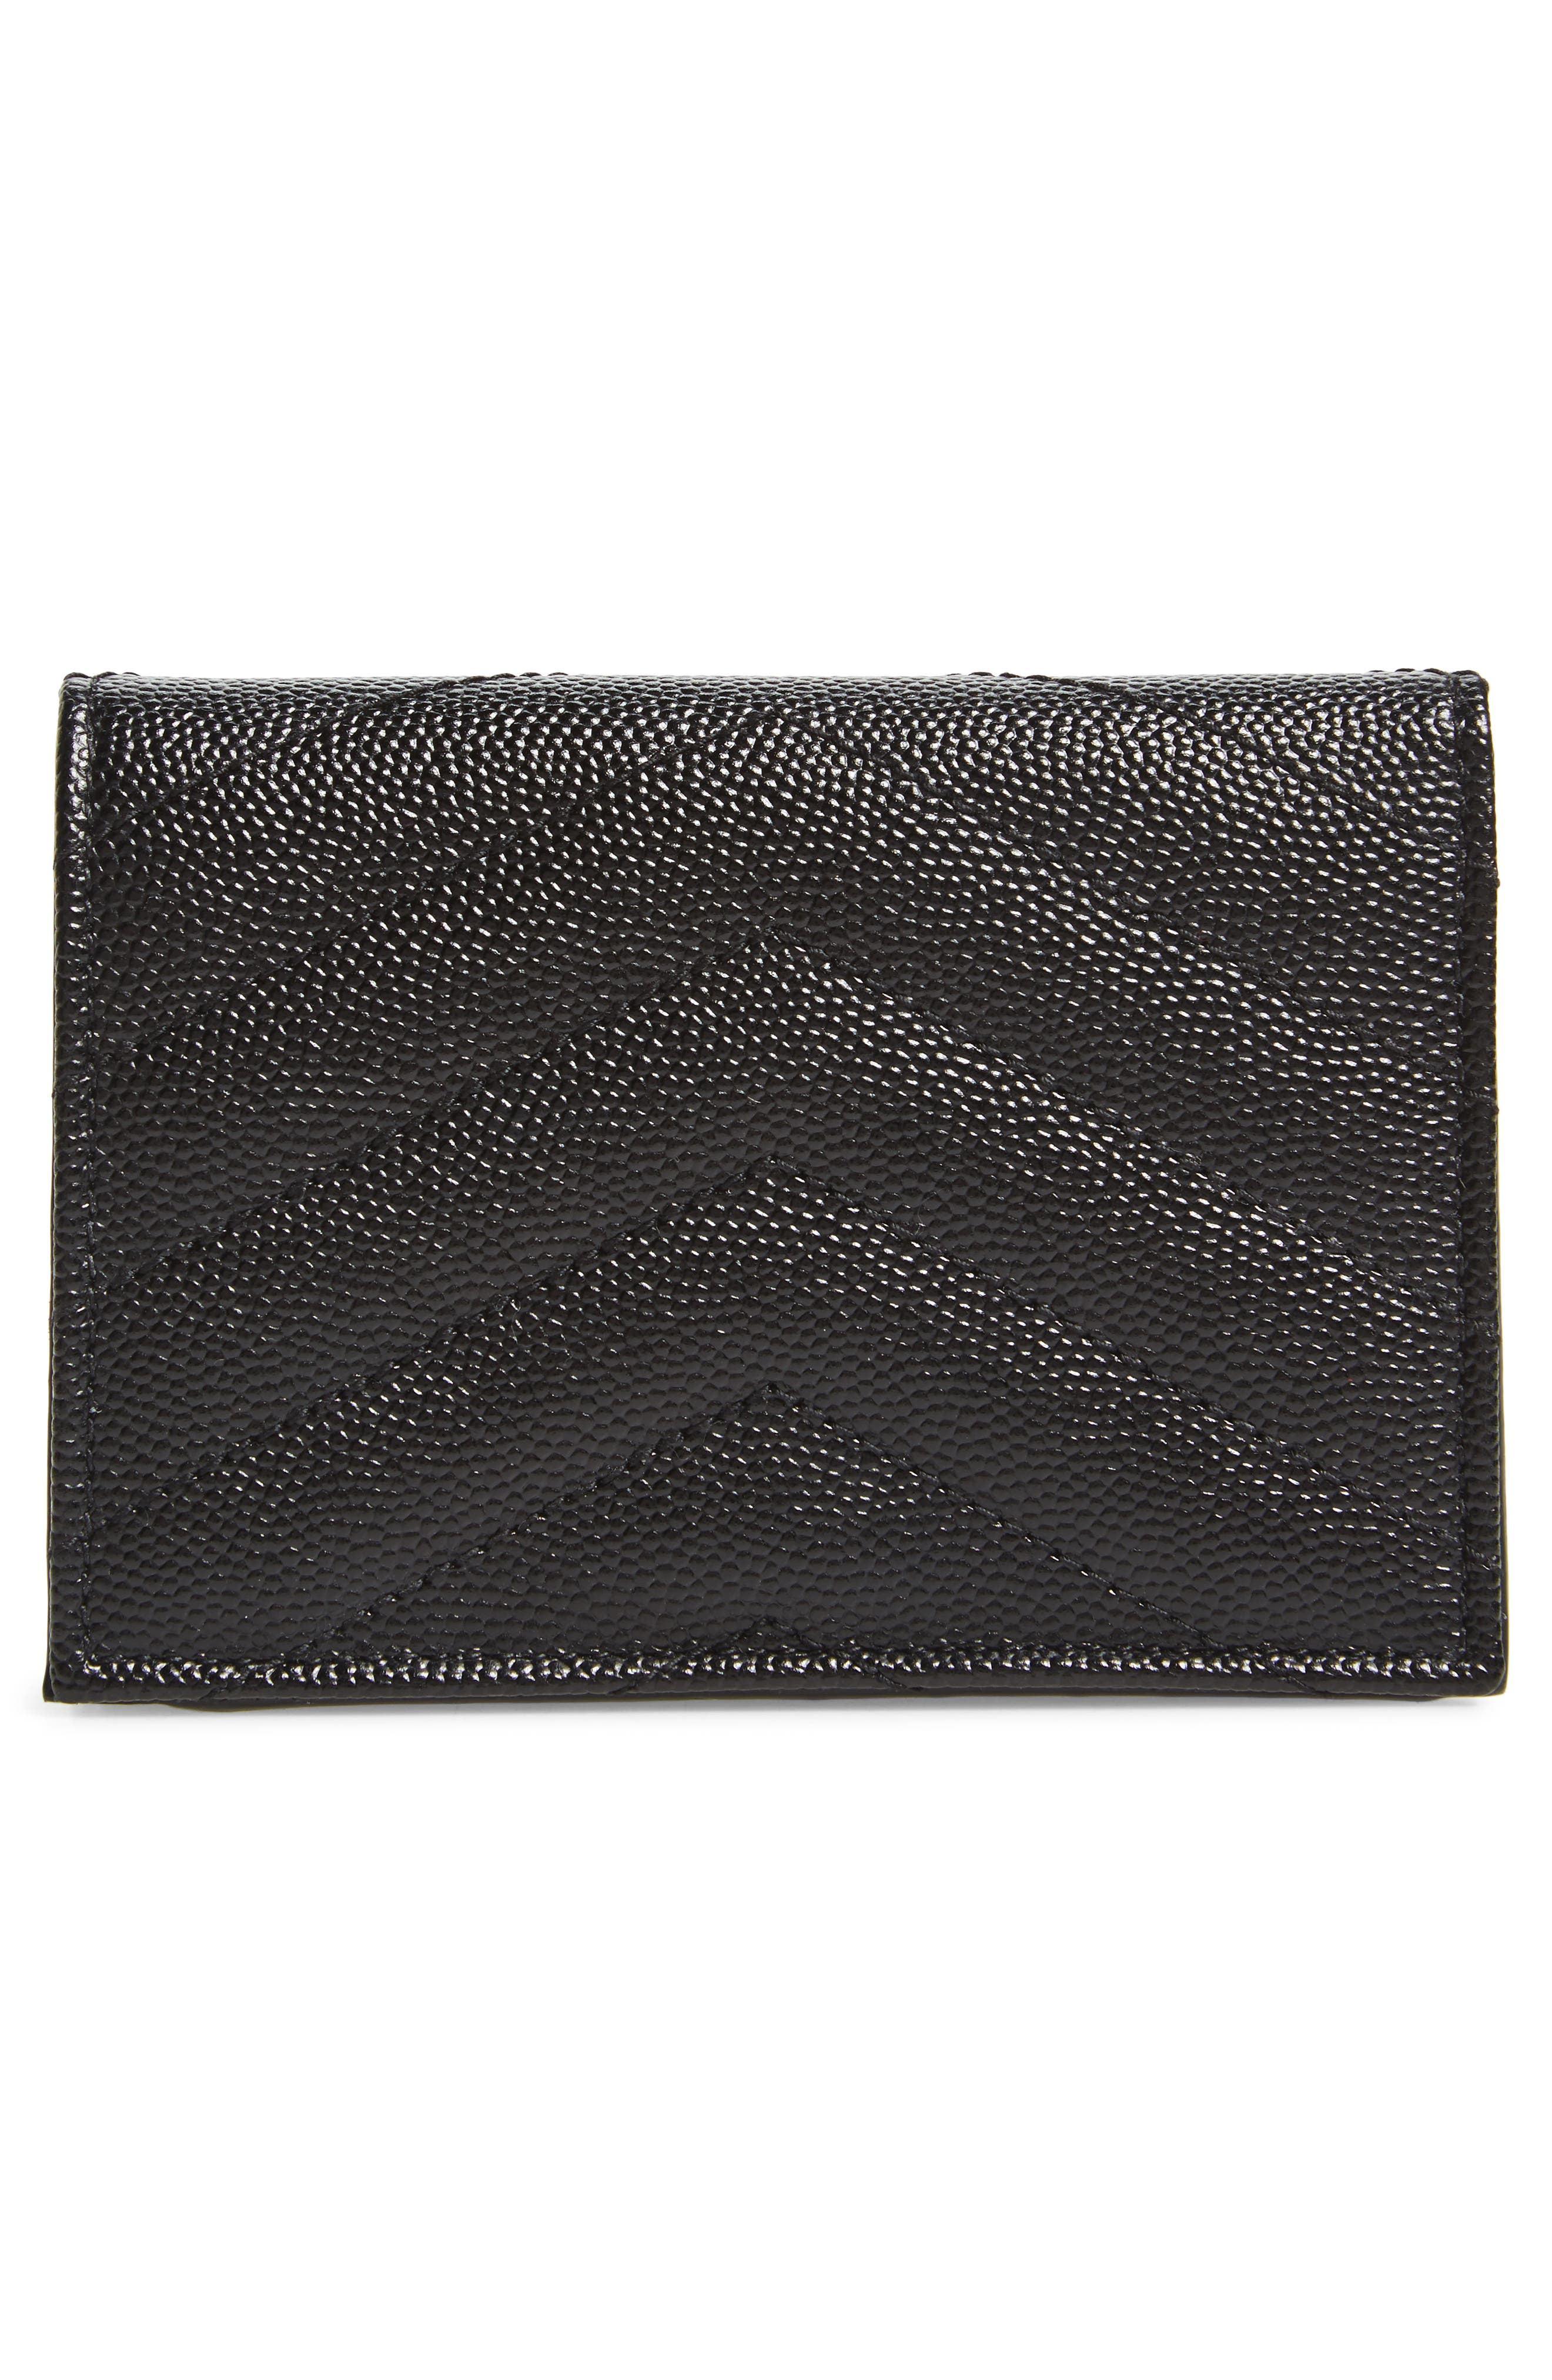 Textured Leather Card Case,                             Alternate thumbnail 4, color,                             001